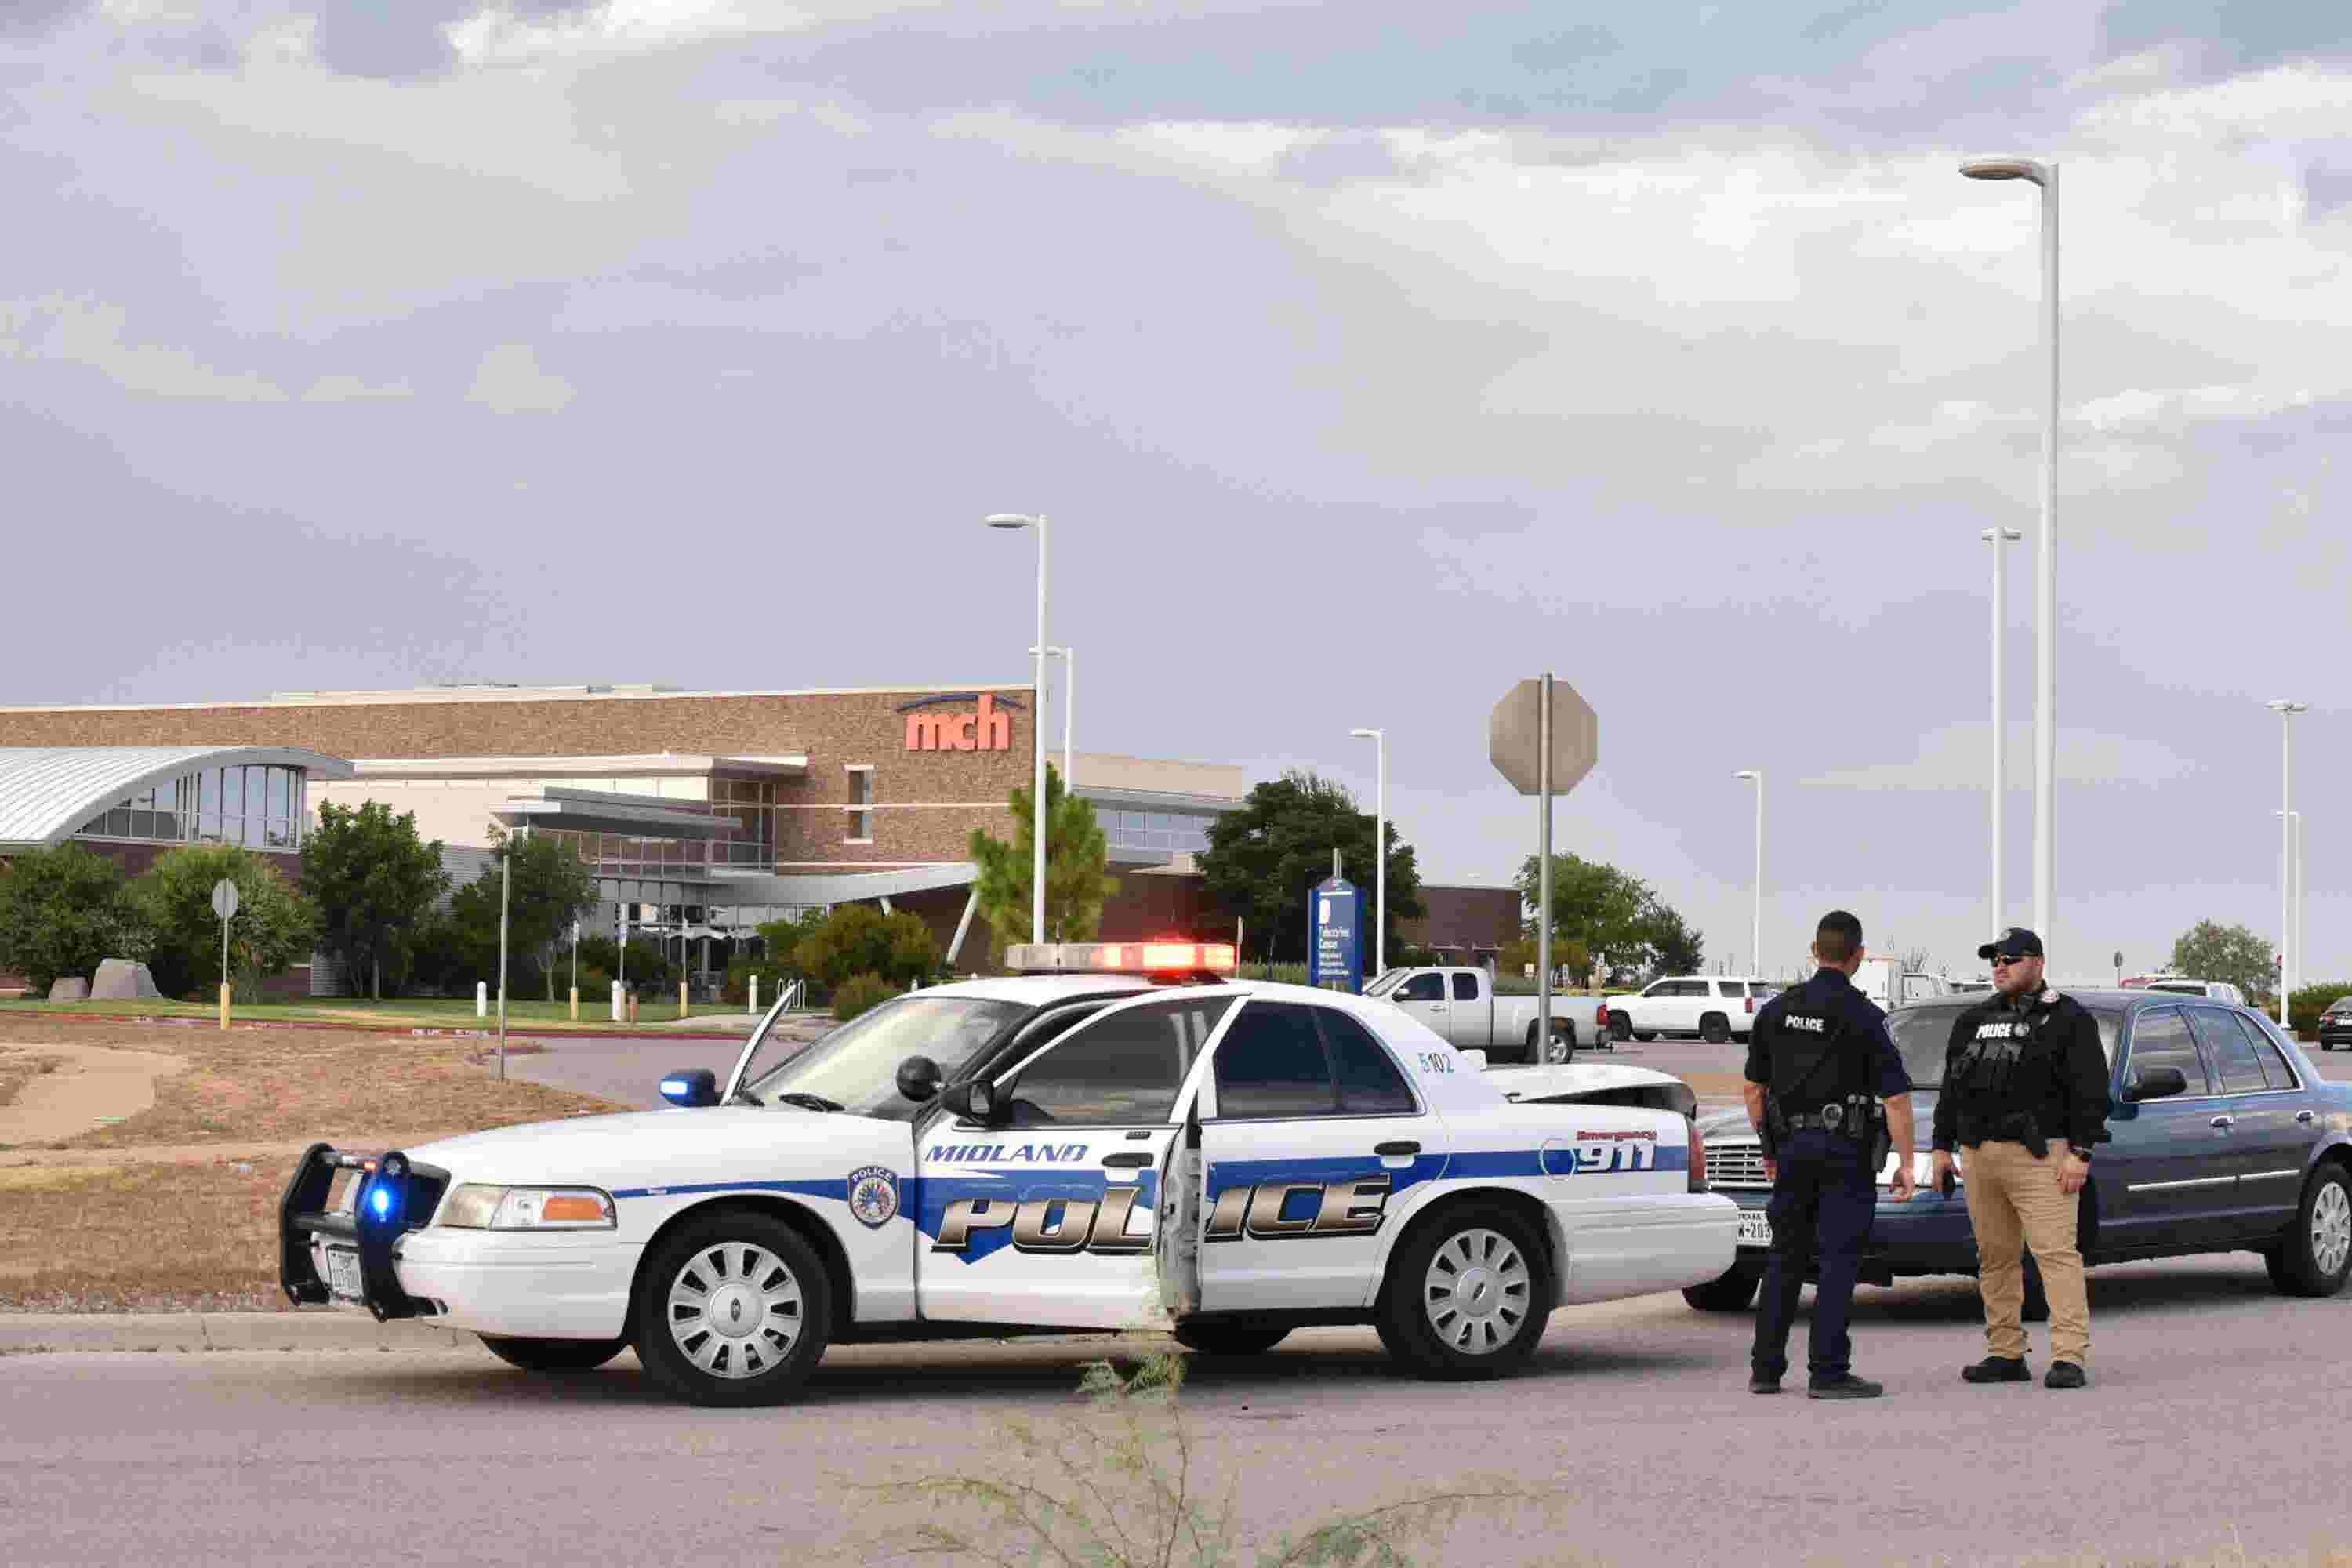 7 dead in mass shooting in Midland-Odessa, Texas